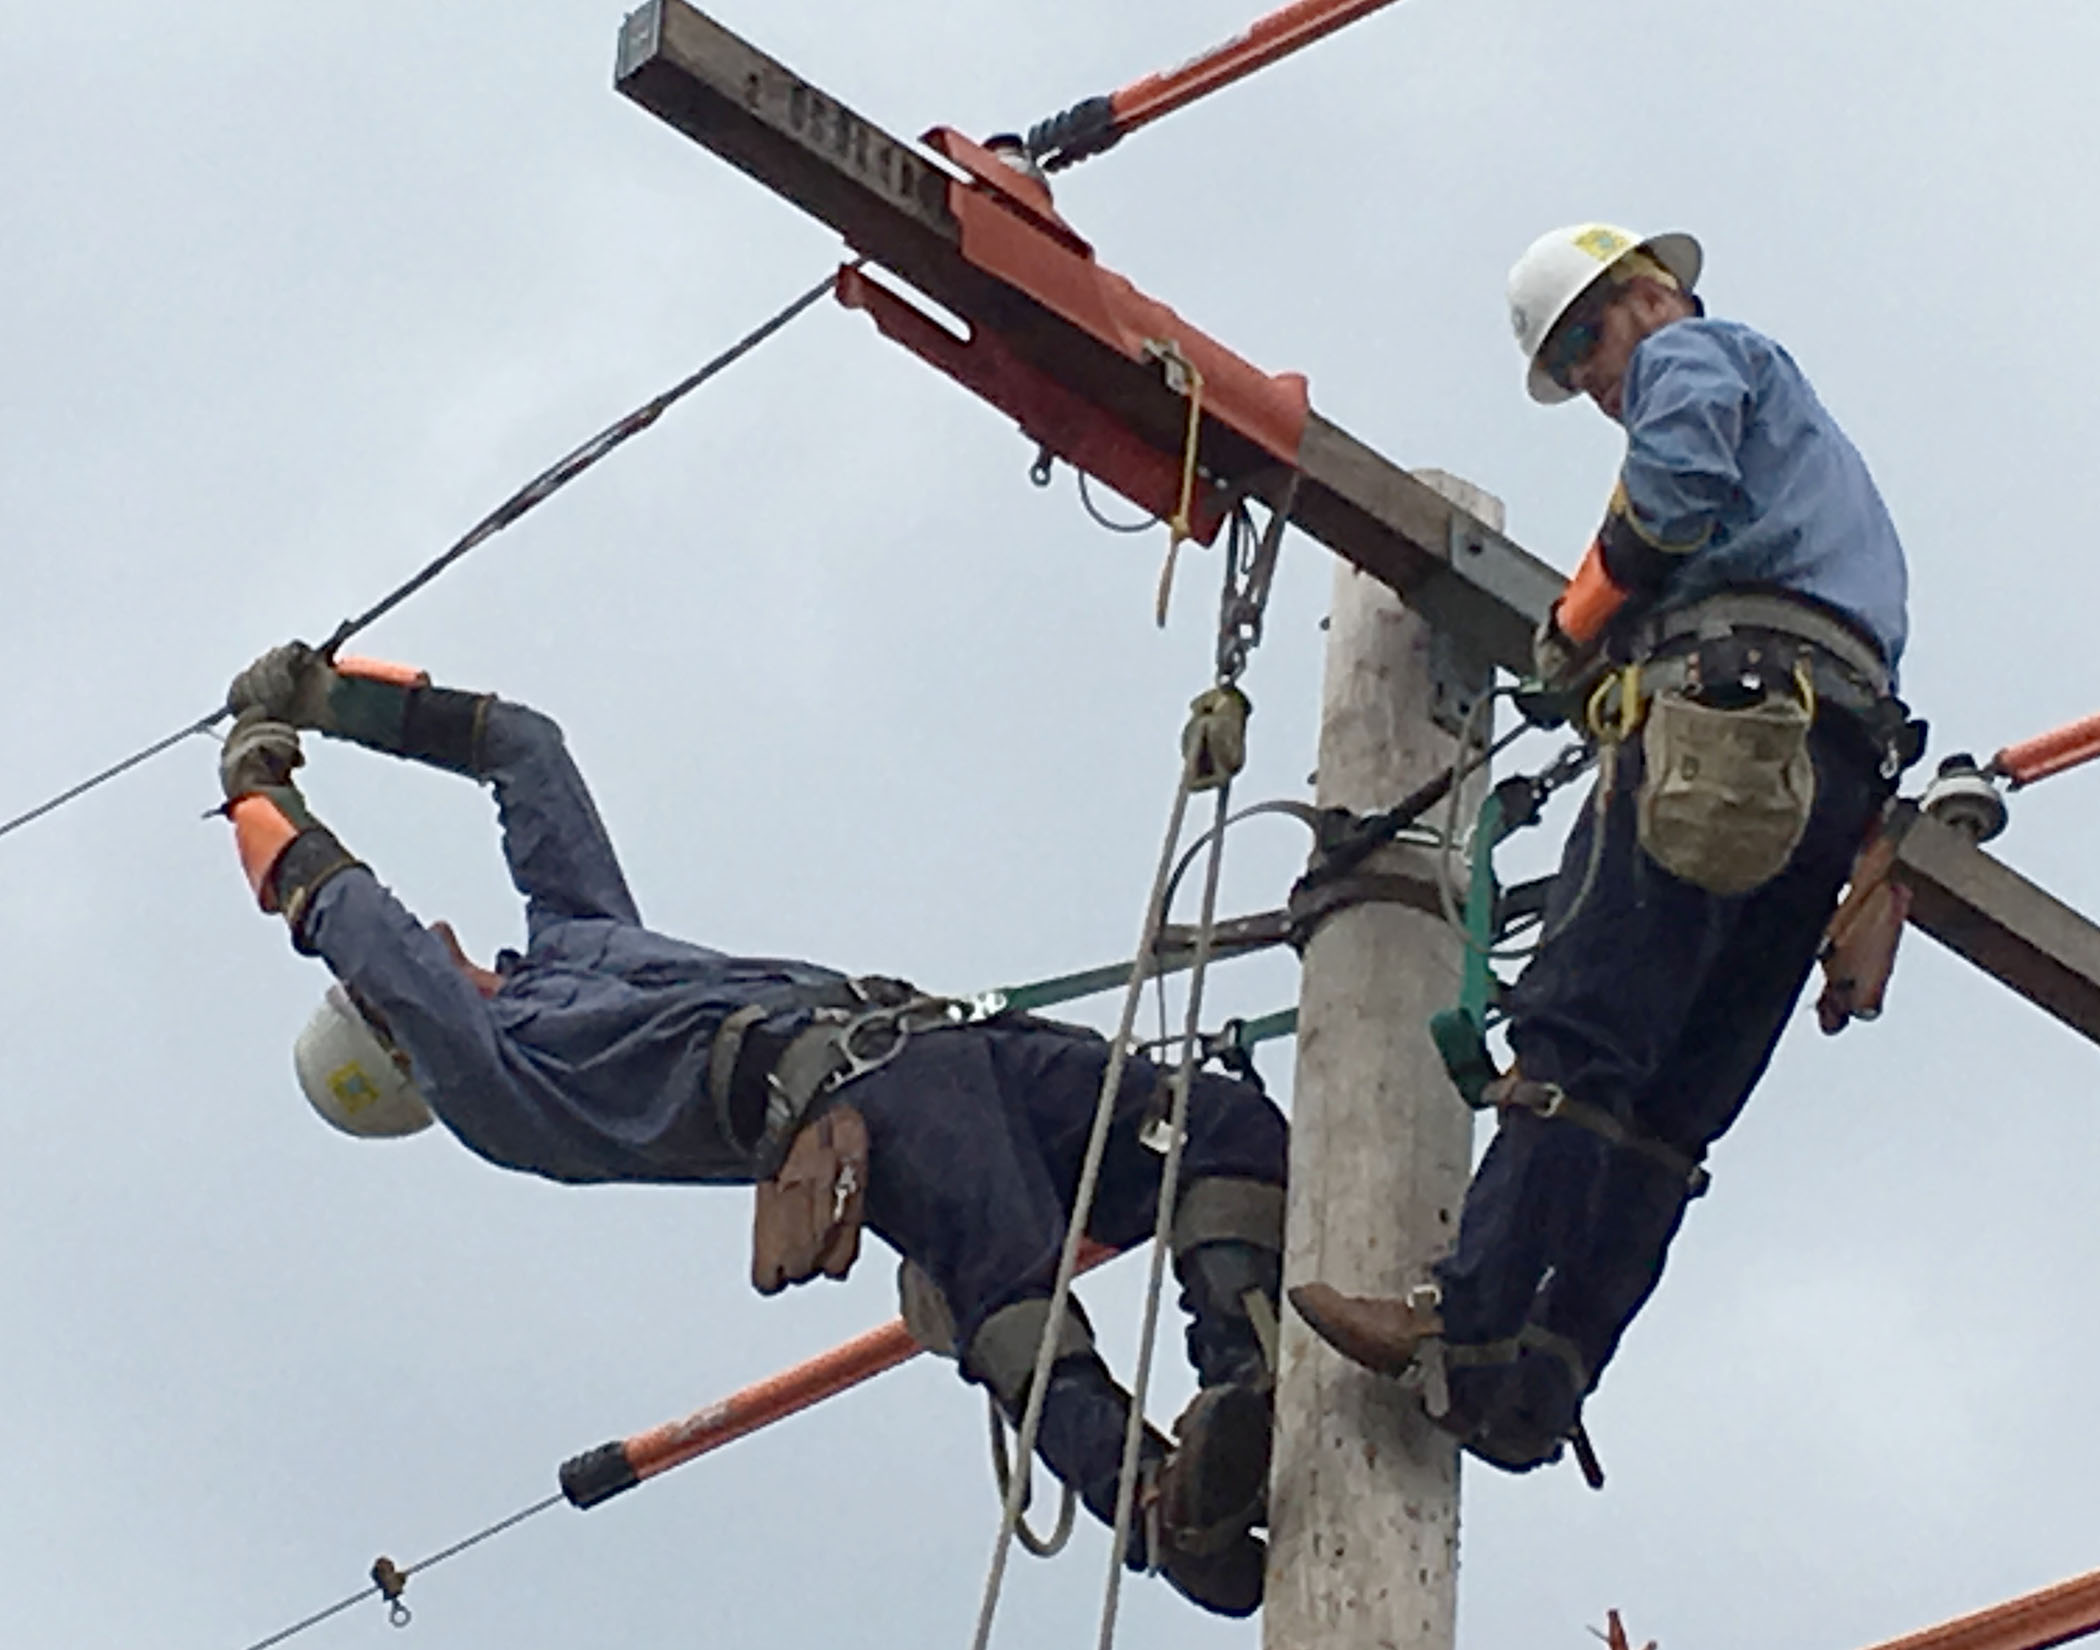 A photo of Great Bend Journeyman team members Alex Breeding and Nathan Stryker work on replacing a wire tie at the International Lineman's Rodeo in Bonner Springs, Oct. 14.